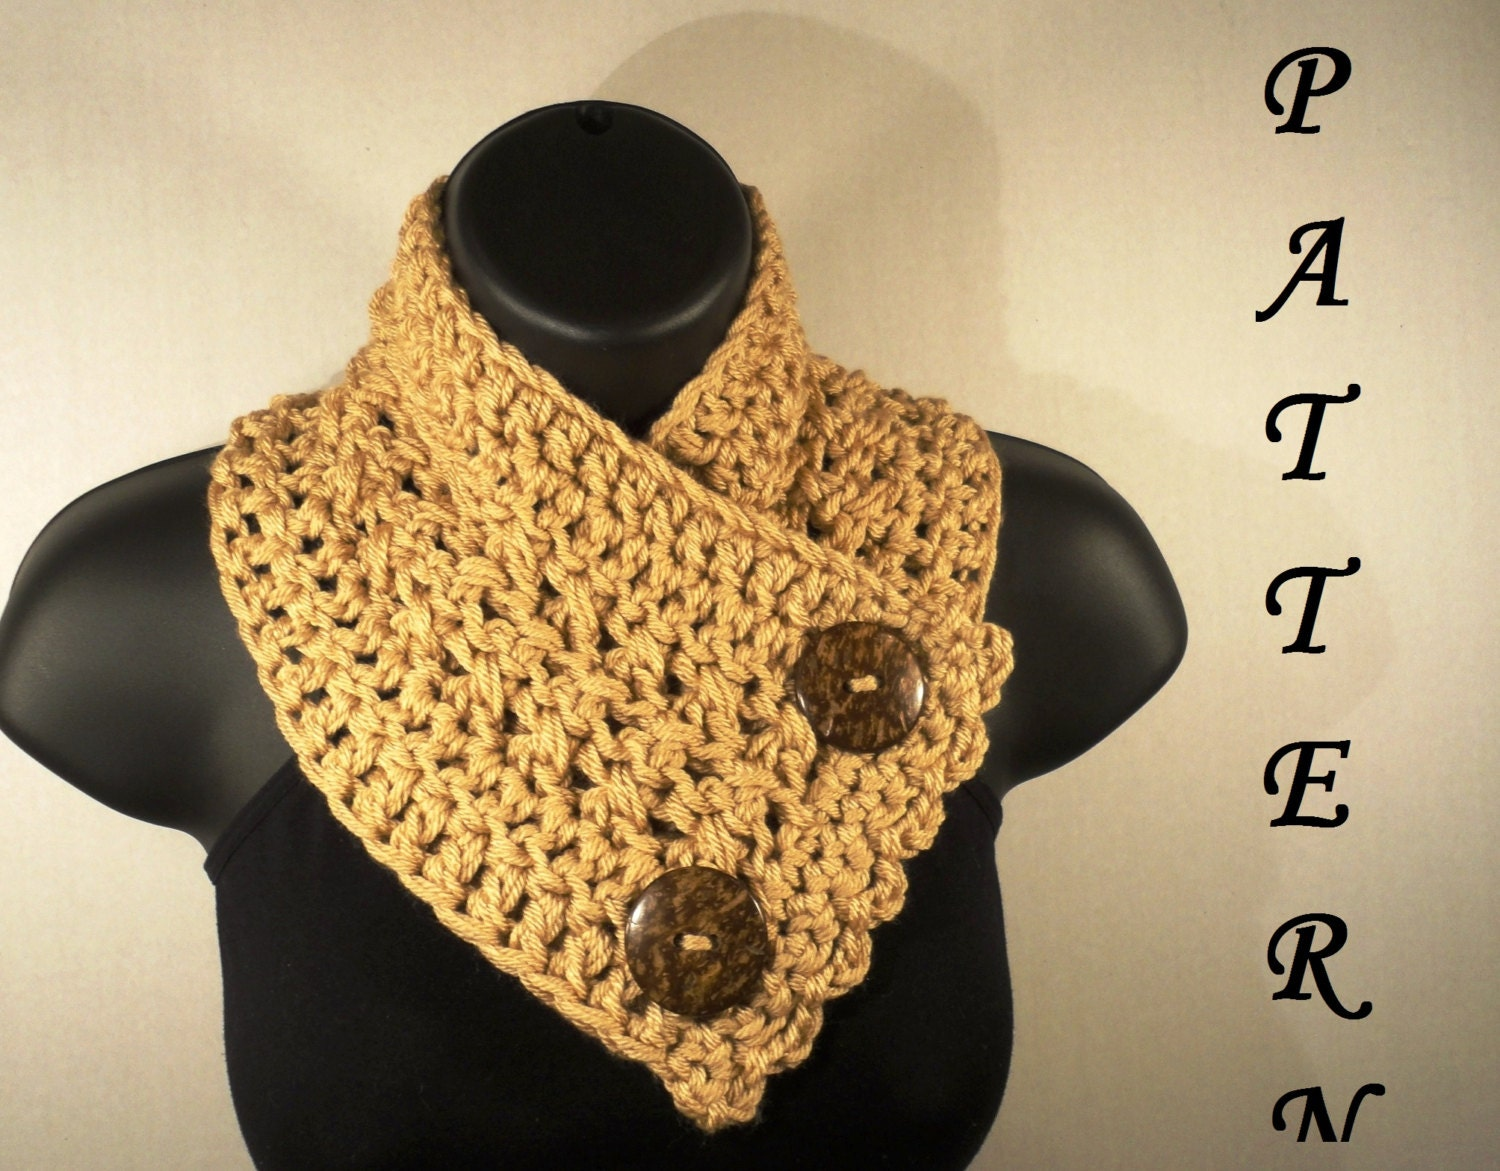 Crochet Pattern For Infinity Scarf With Buttons : Crochet Pattern, Crochet Scarf Pattern, Neckwarmer, Button ...